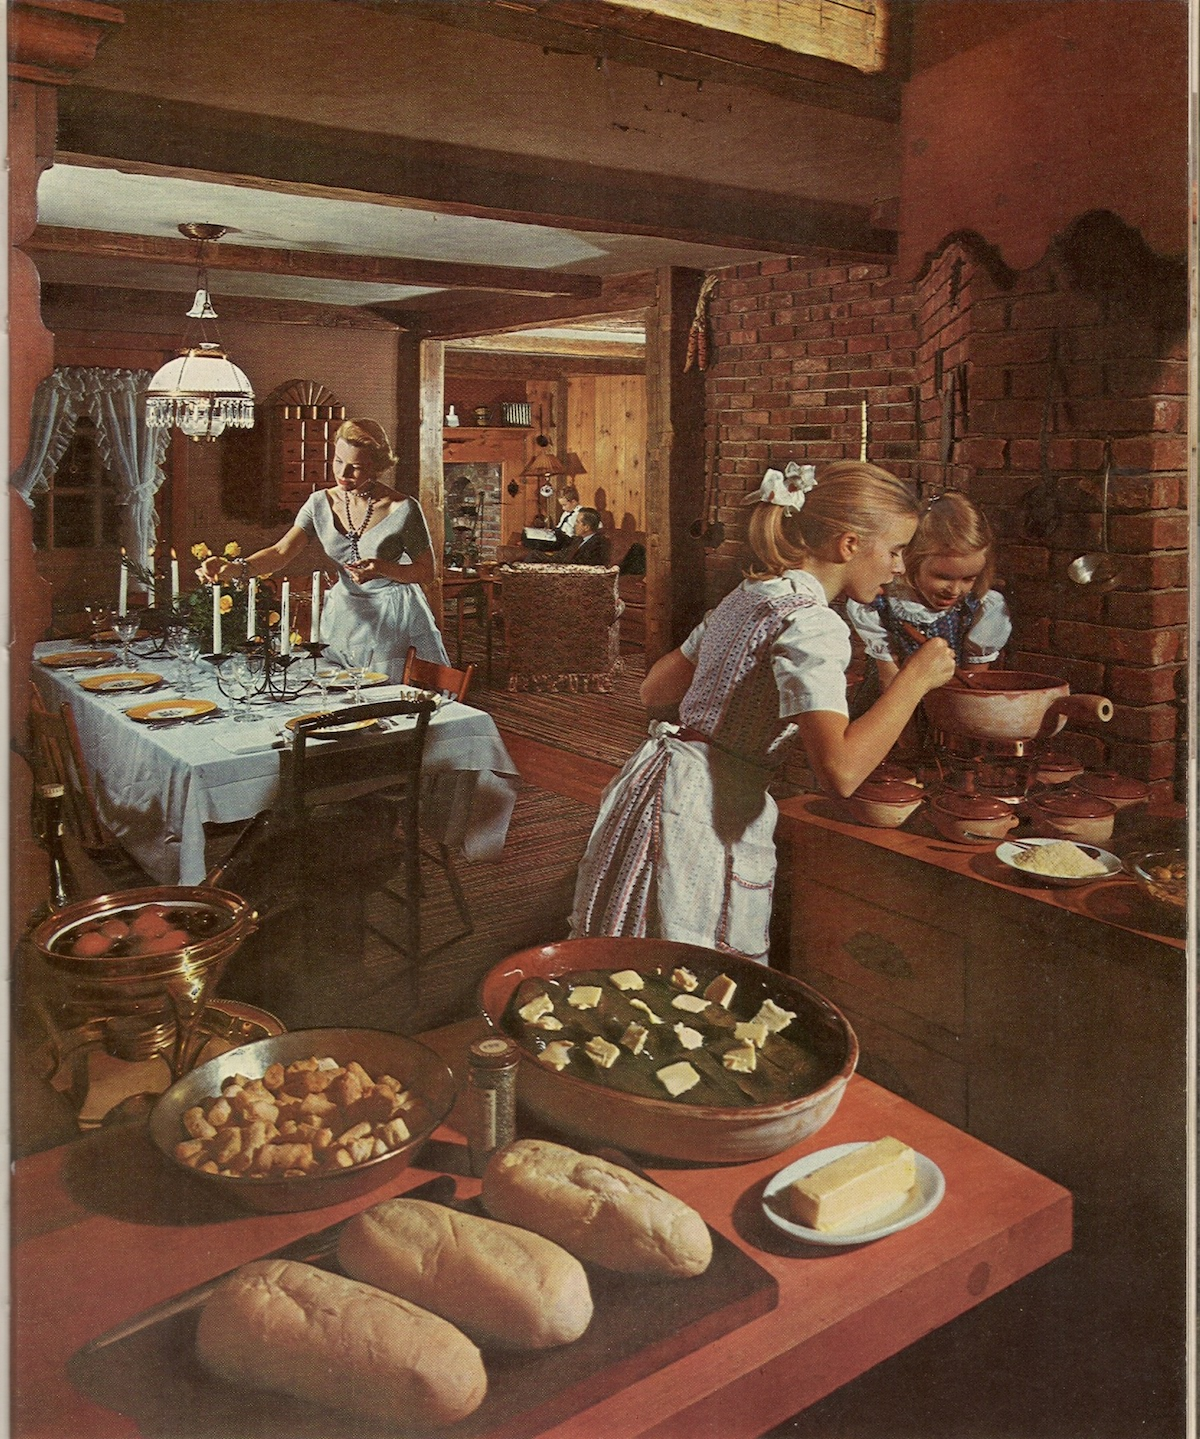 Waiting For Don Draper. Life Picture Cook Book, 1958